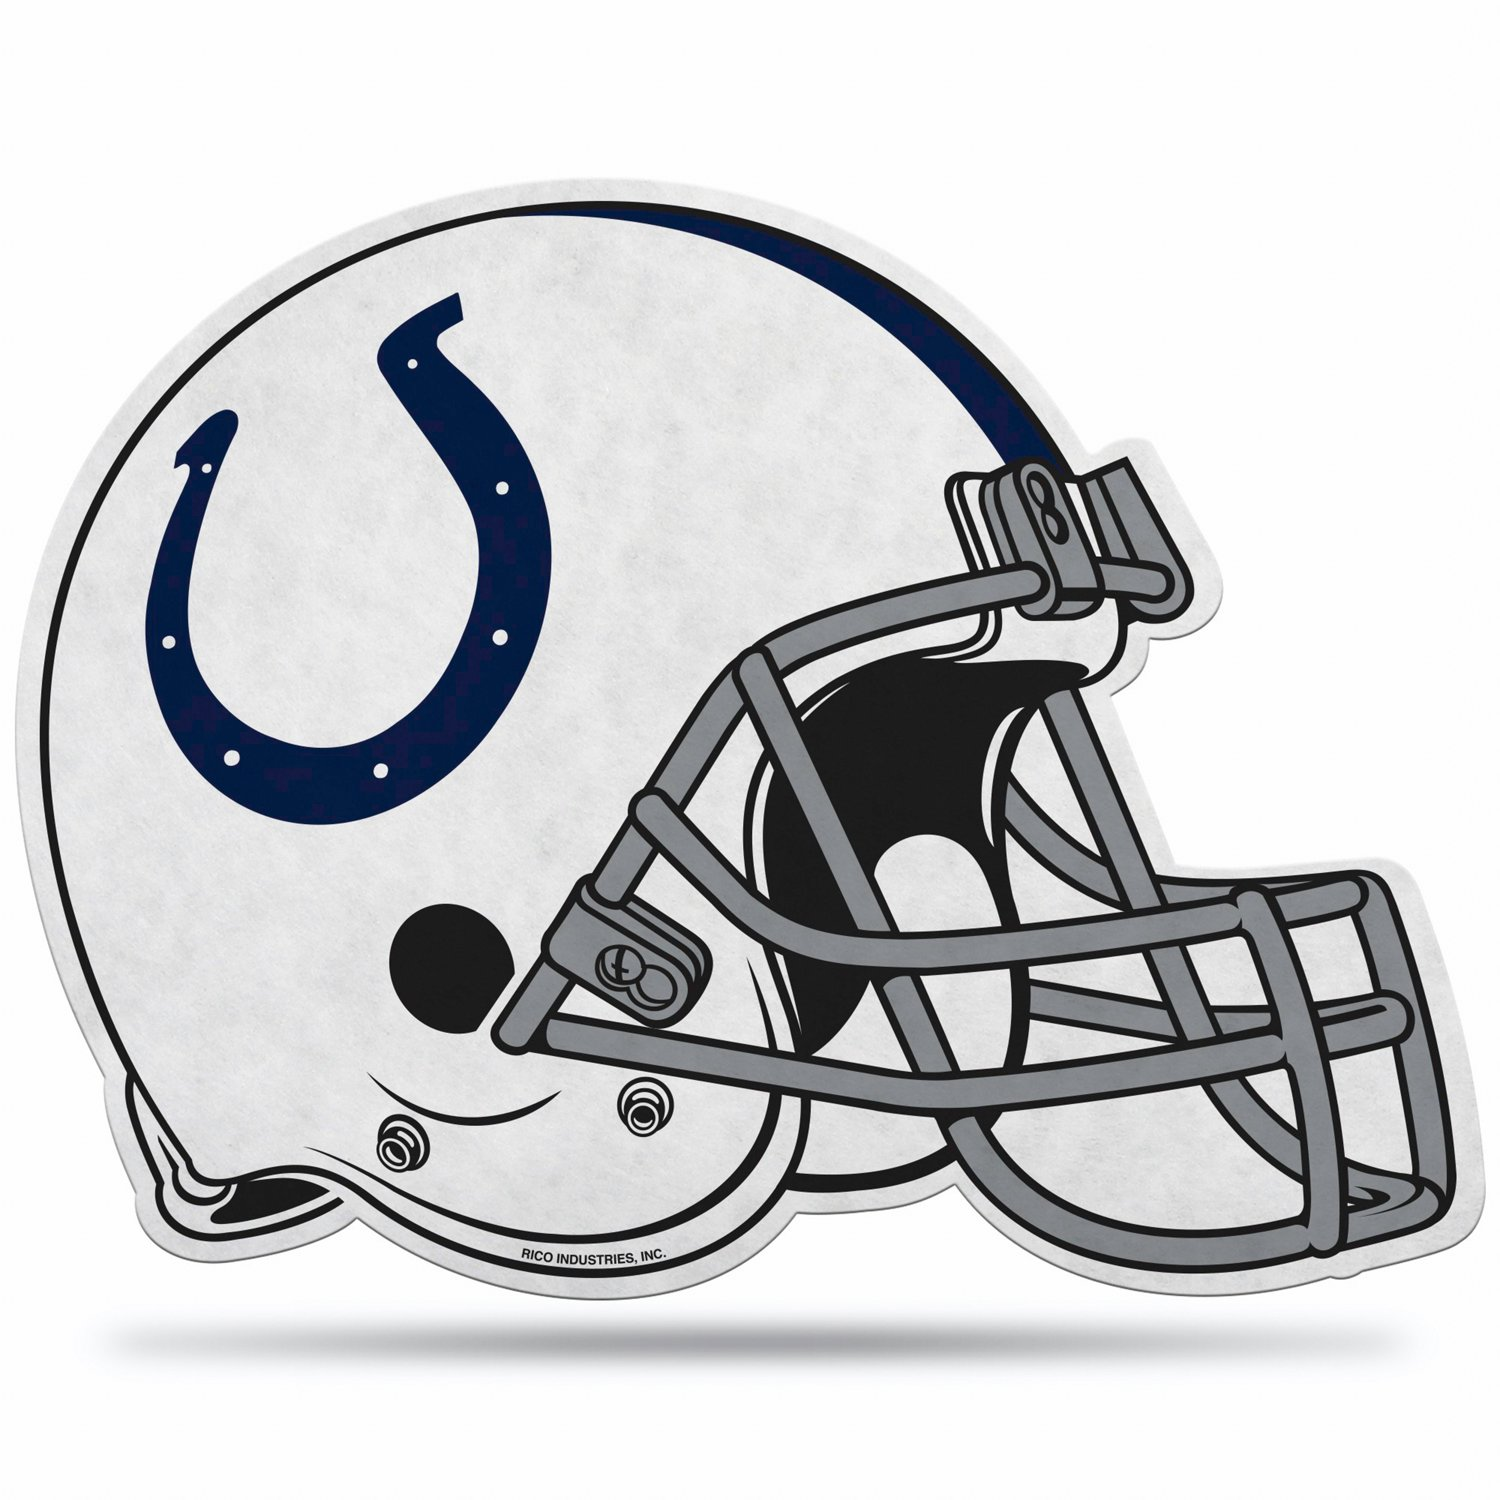 Pennant with football helmet clipart clipart black and white Rico Indianapolis Colts Helmet Pennant clipart black and white